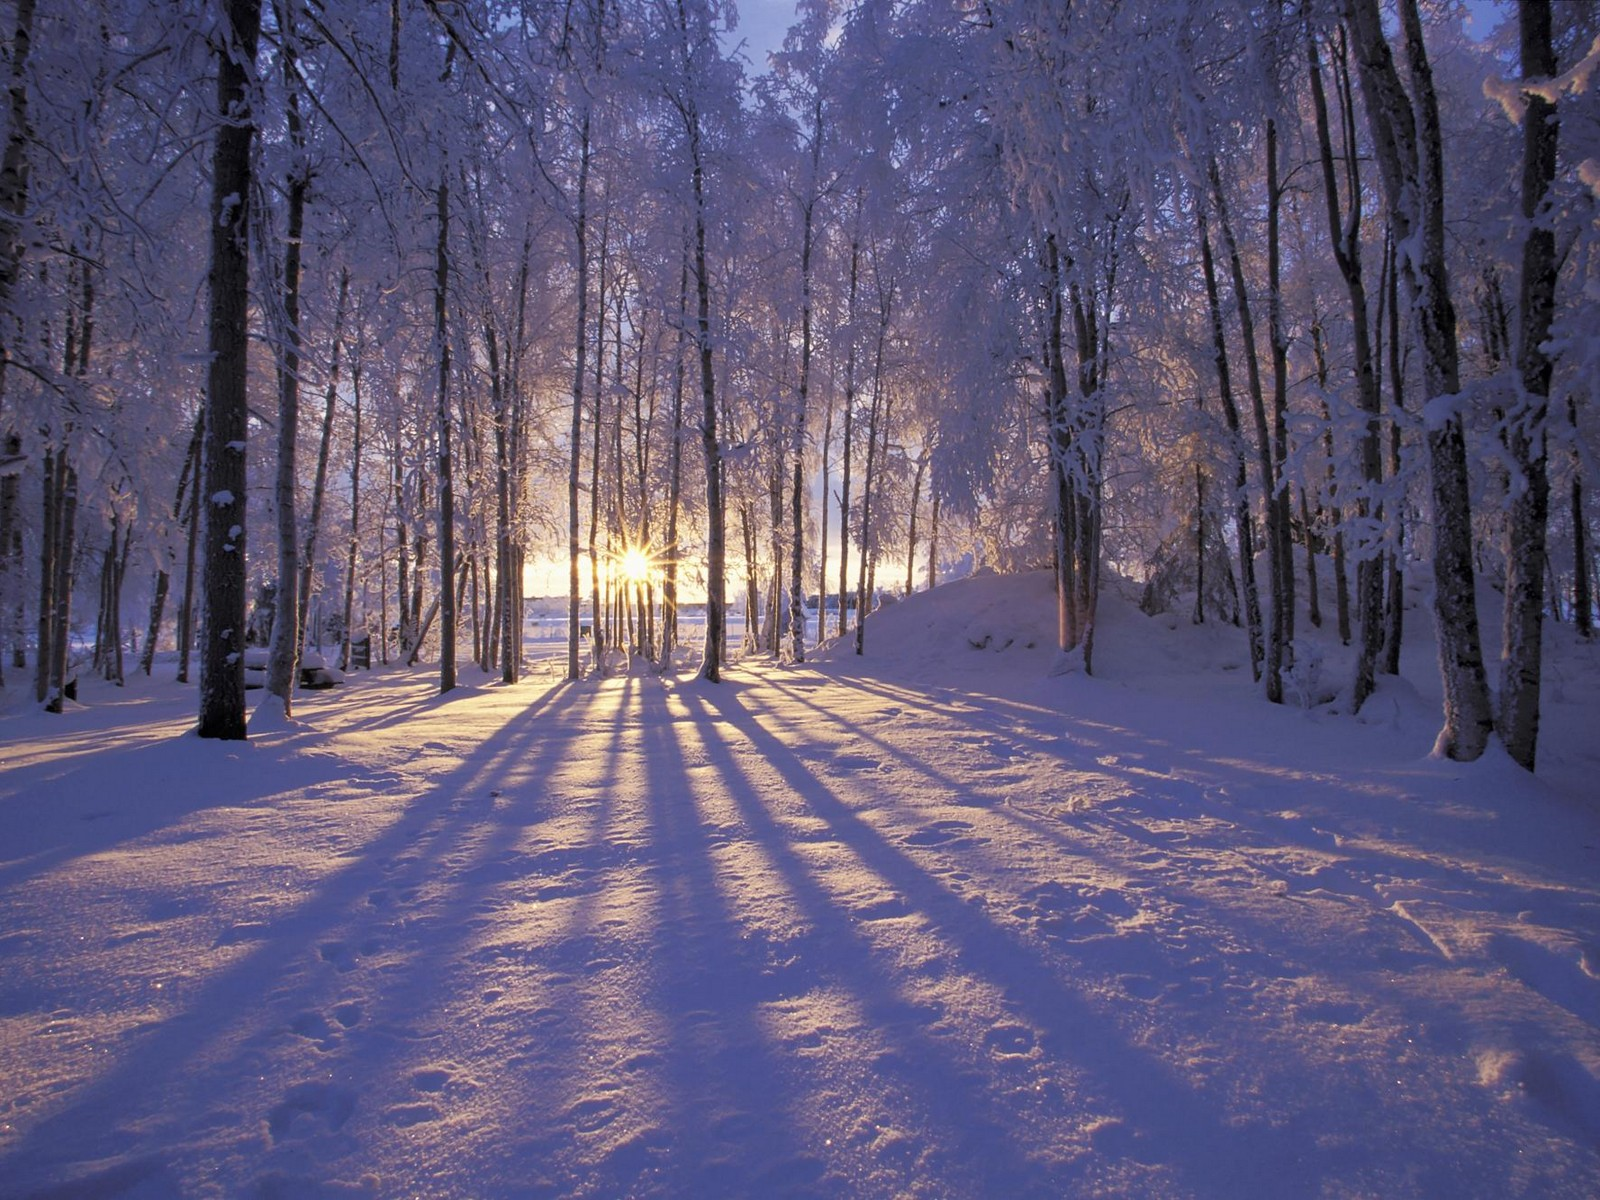 Winter sunset scenery